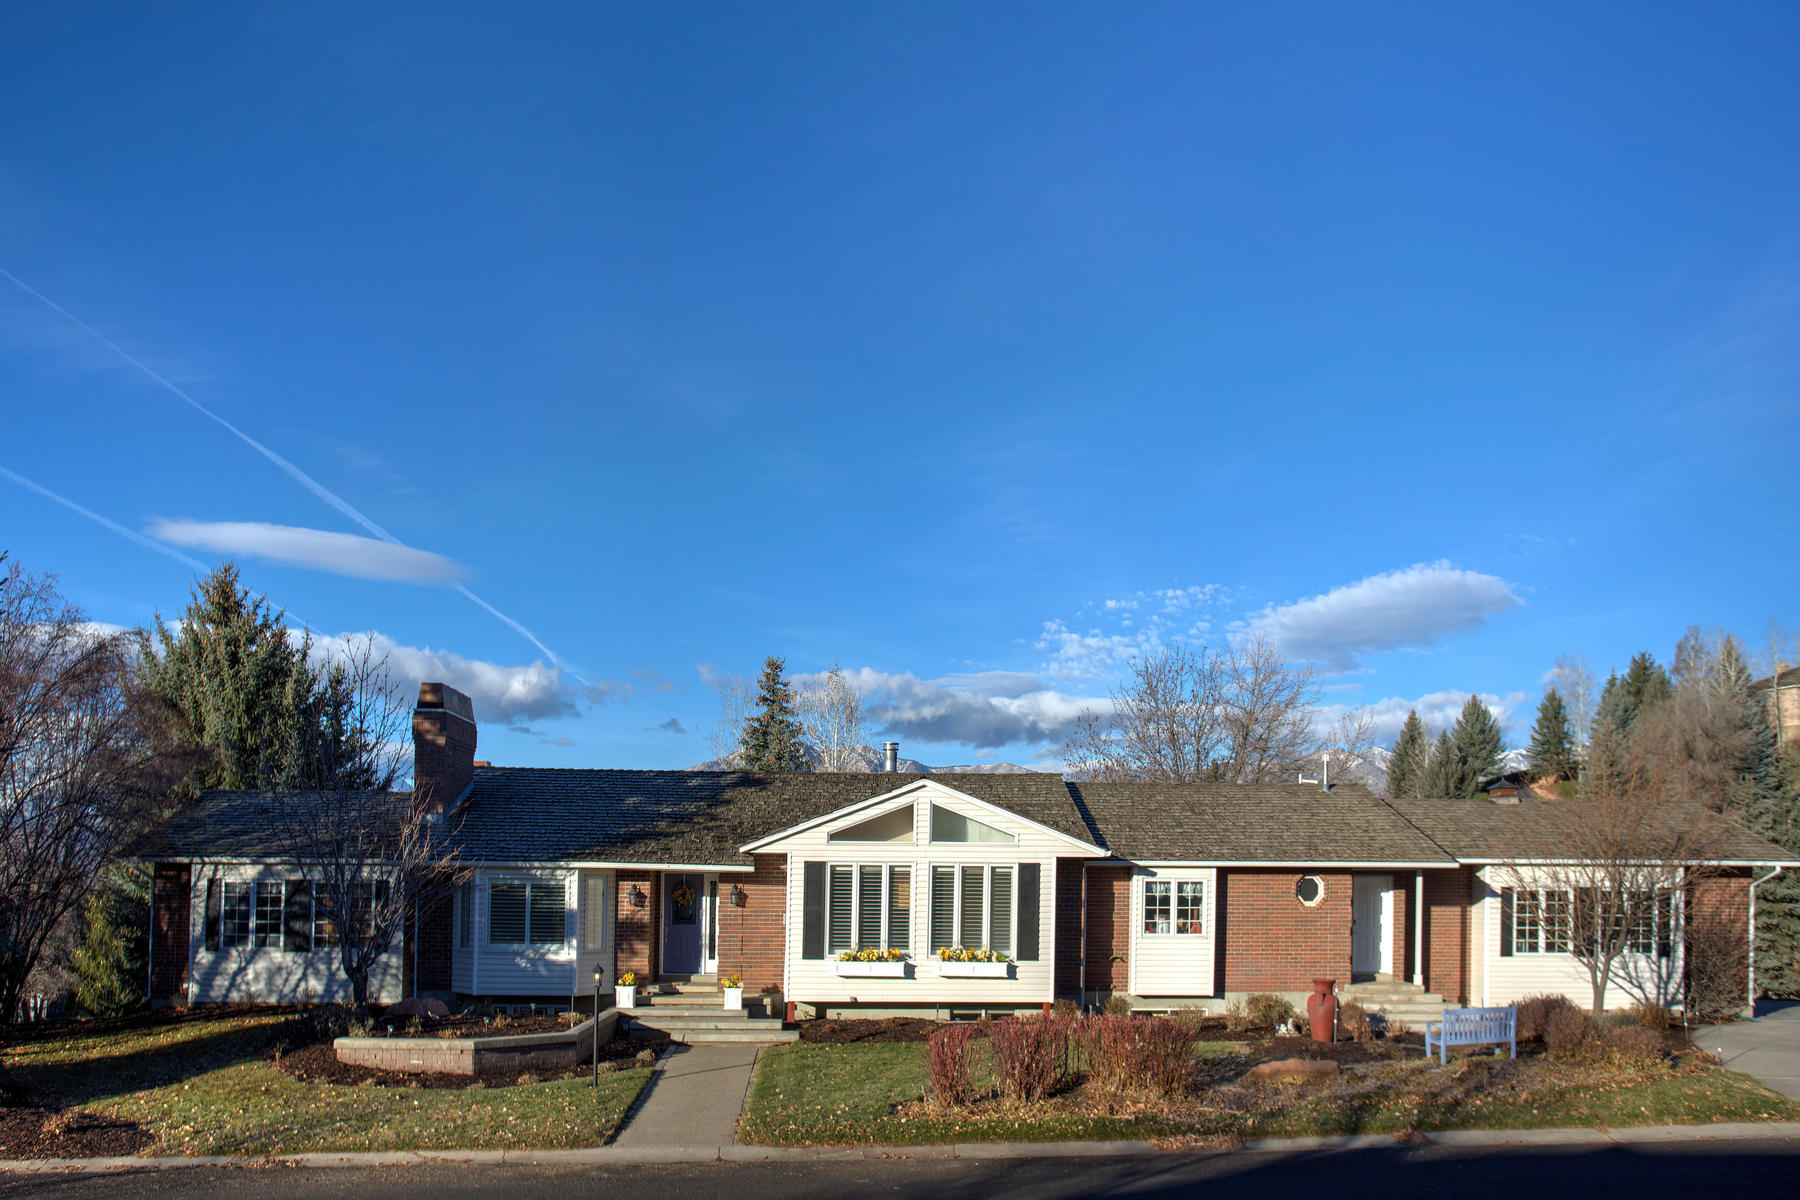 Single Family Home for Sale at Golden Opportunity! 1075 N Valley Dr Heber City, Utah 84032 United States